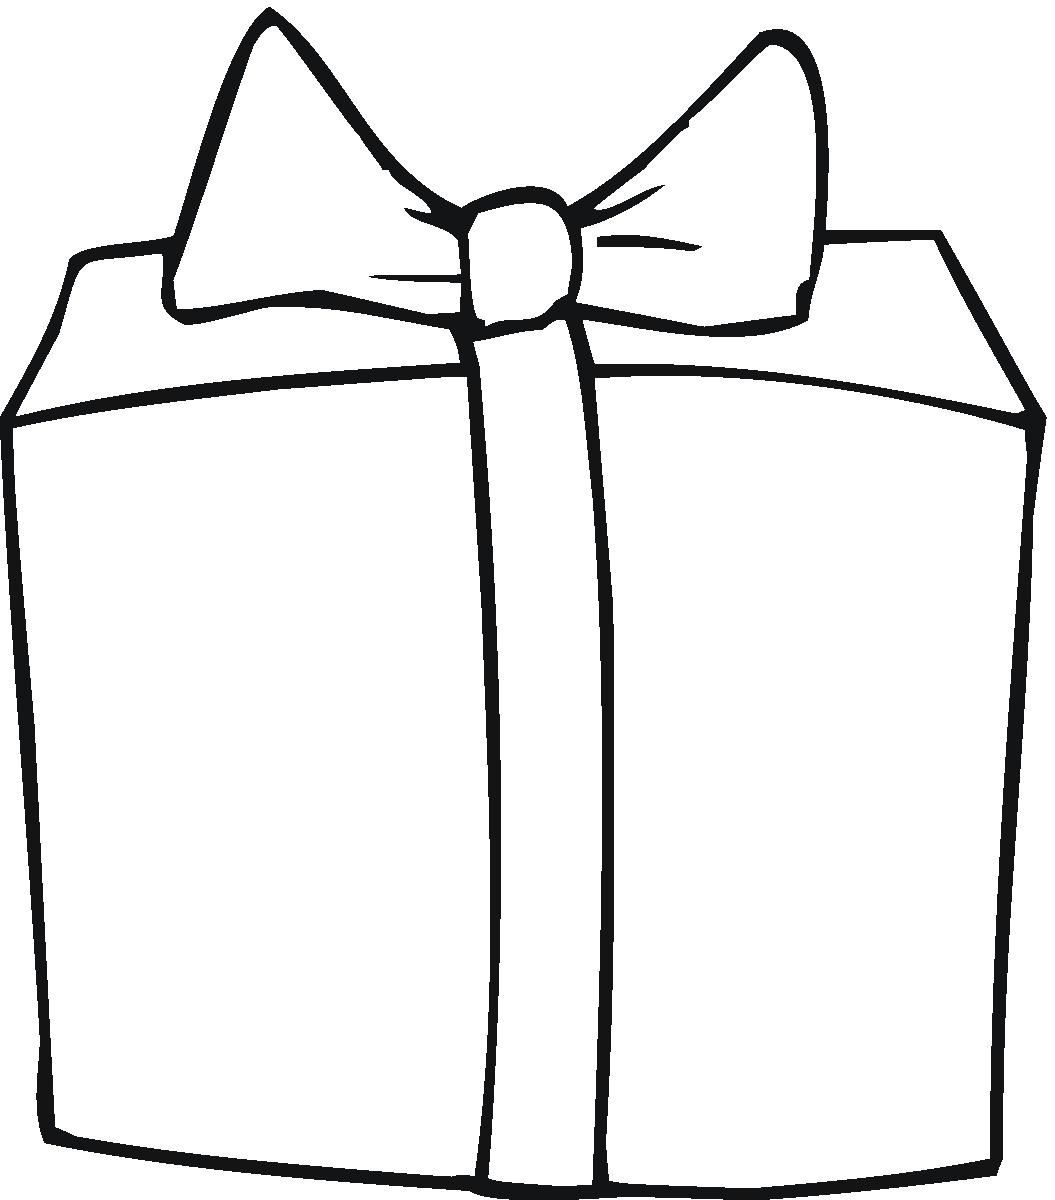 Box clipart outline. Present cliparts free download